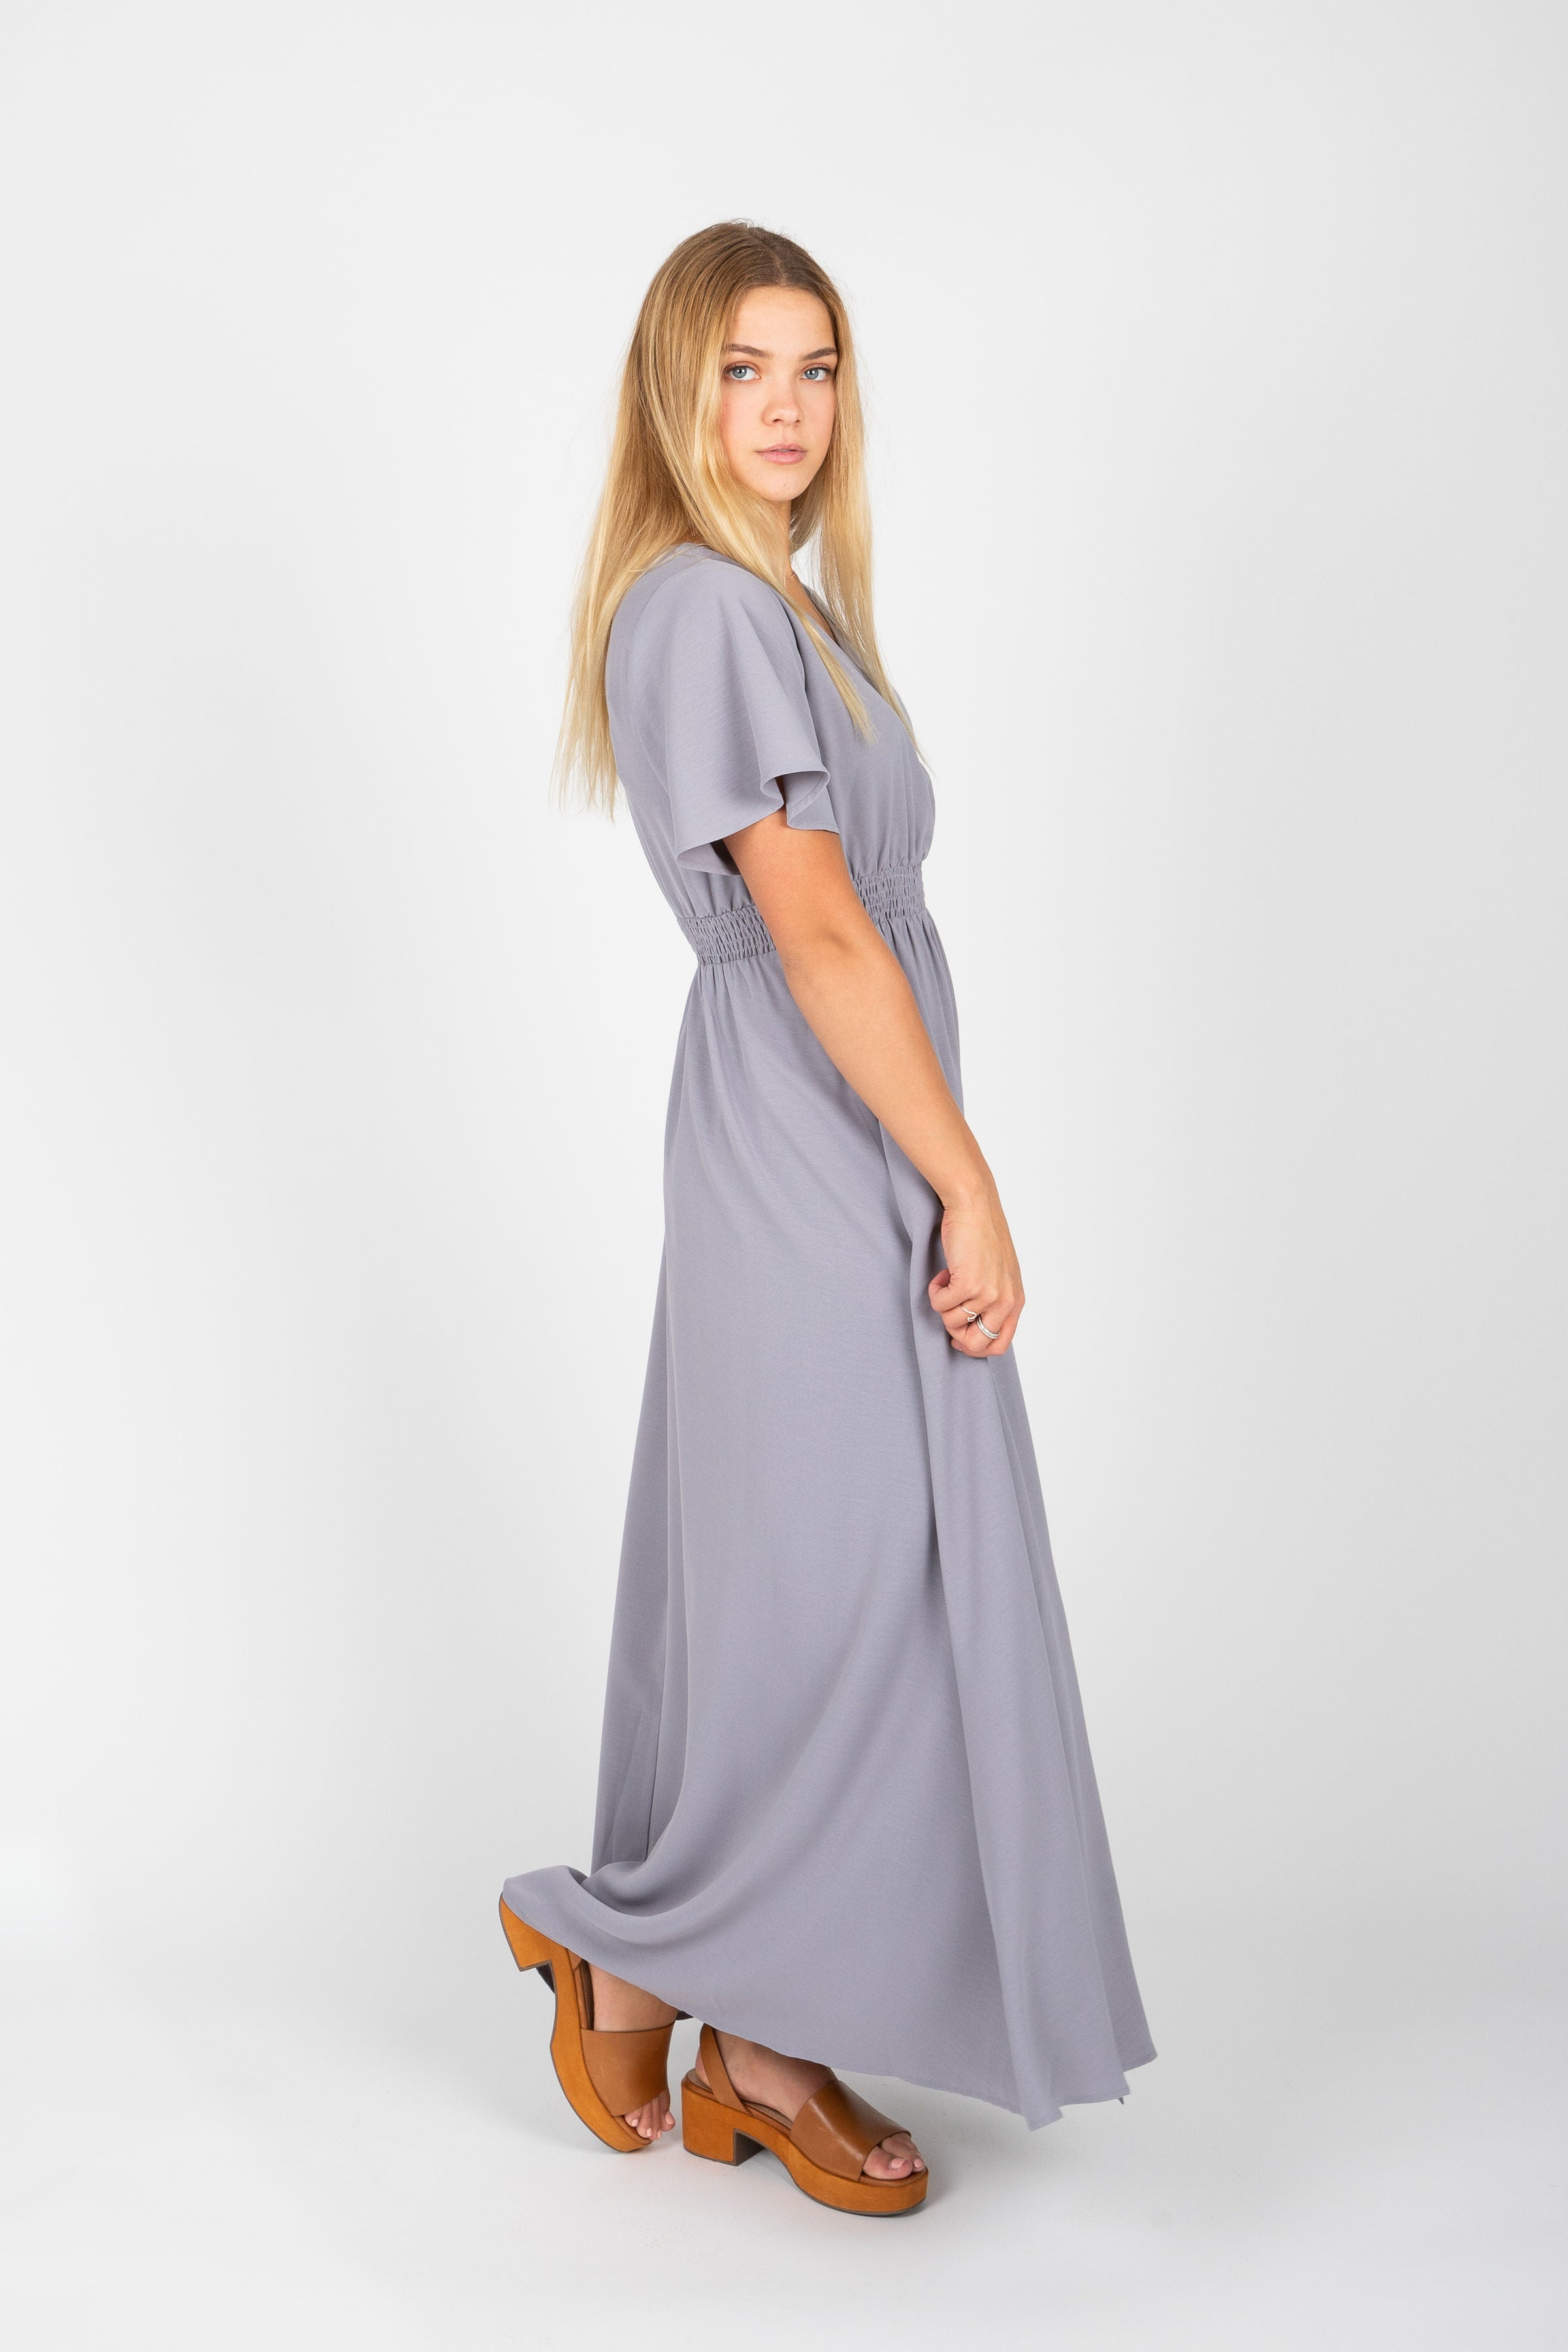 The Timberlake Maxi Dress in Grey